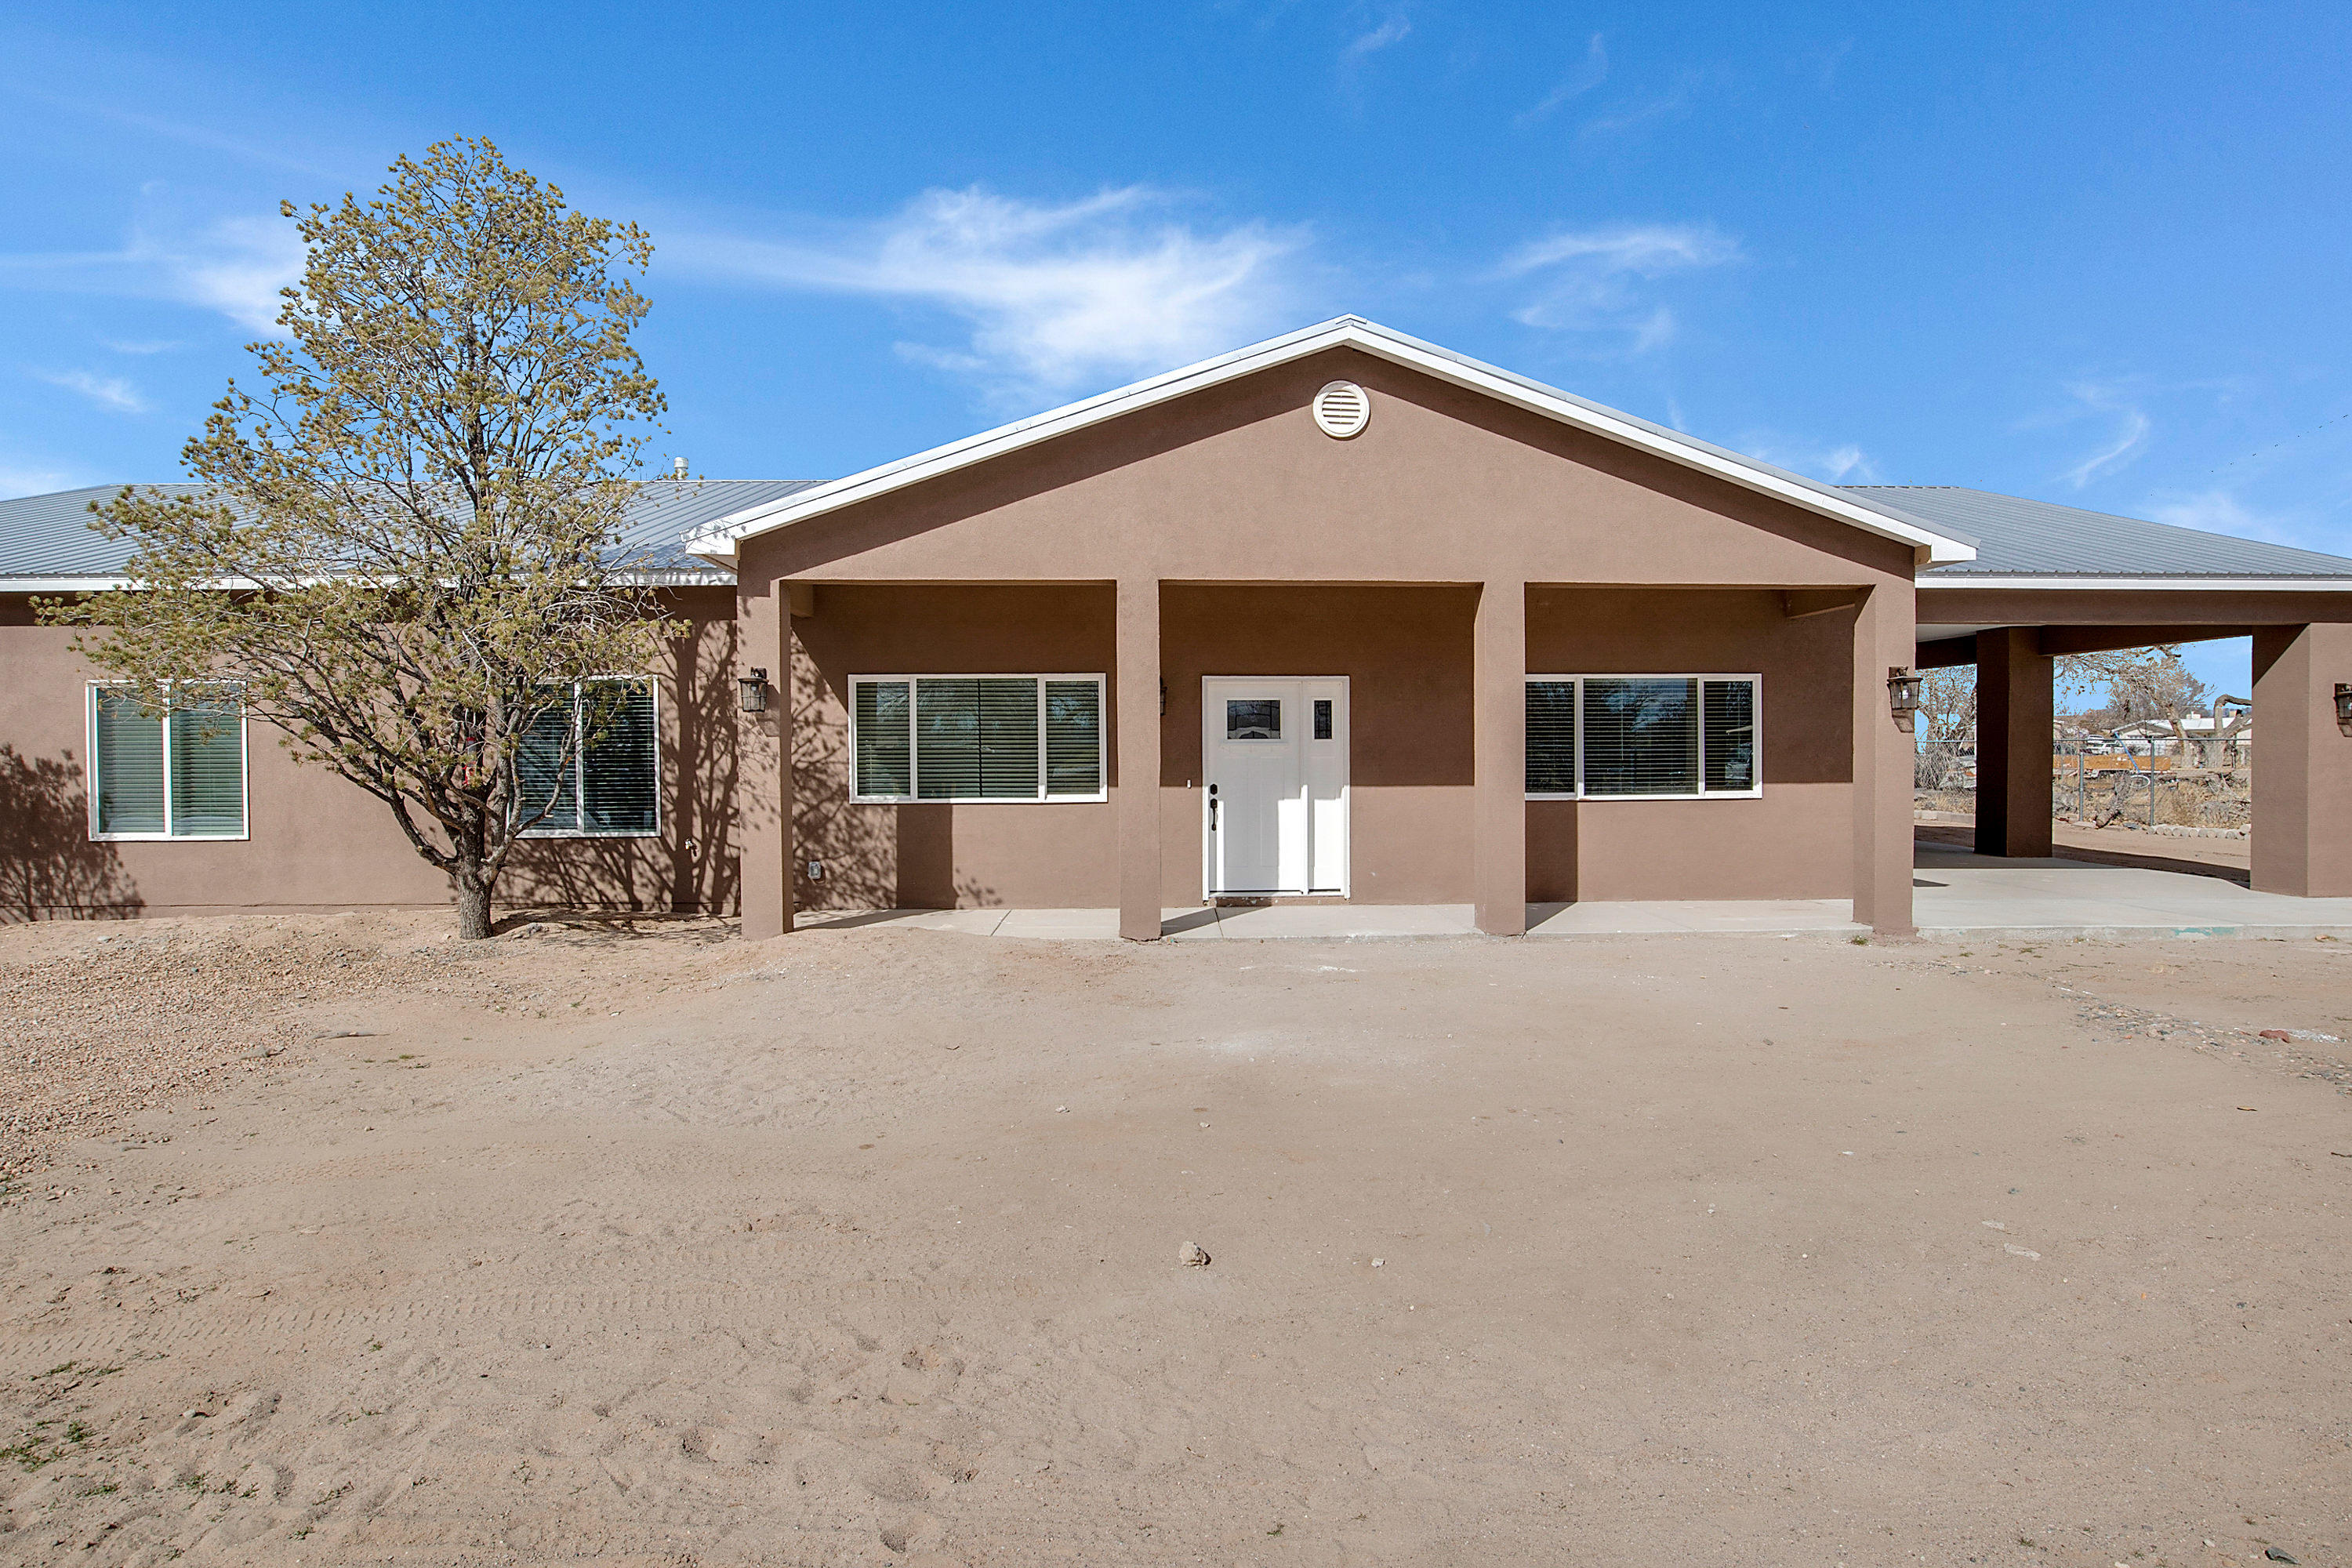 Beautiful Home on the South Valley!! Total sqft 2609 sits on .55 acre on the south Valley includes 4 bedroom, 2 bath, raised callings, open living room and spacious kitchen design and so much more.  Home is currently in the finishing stage working on the landscape....call to see this home today!